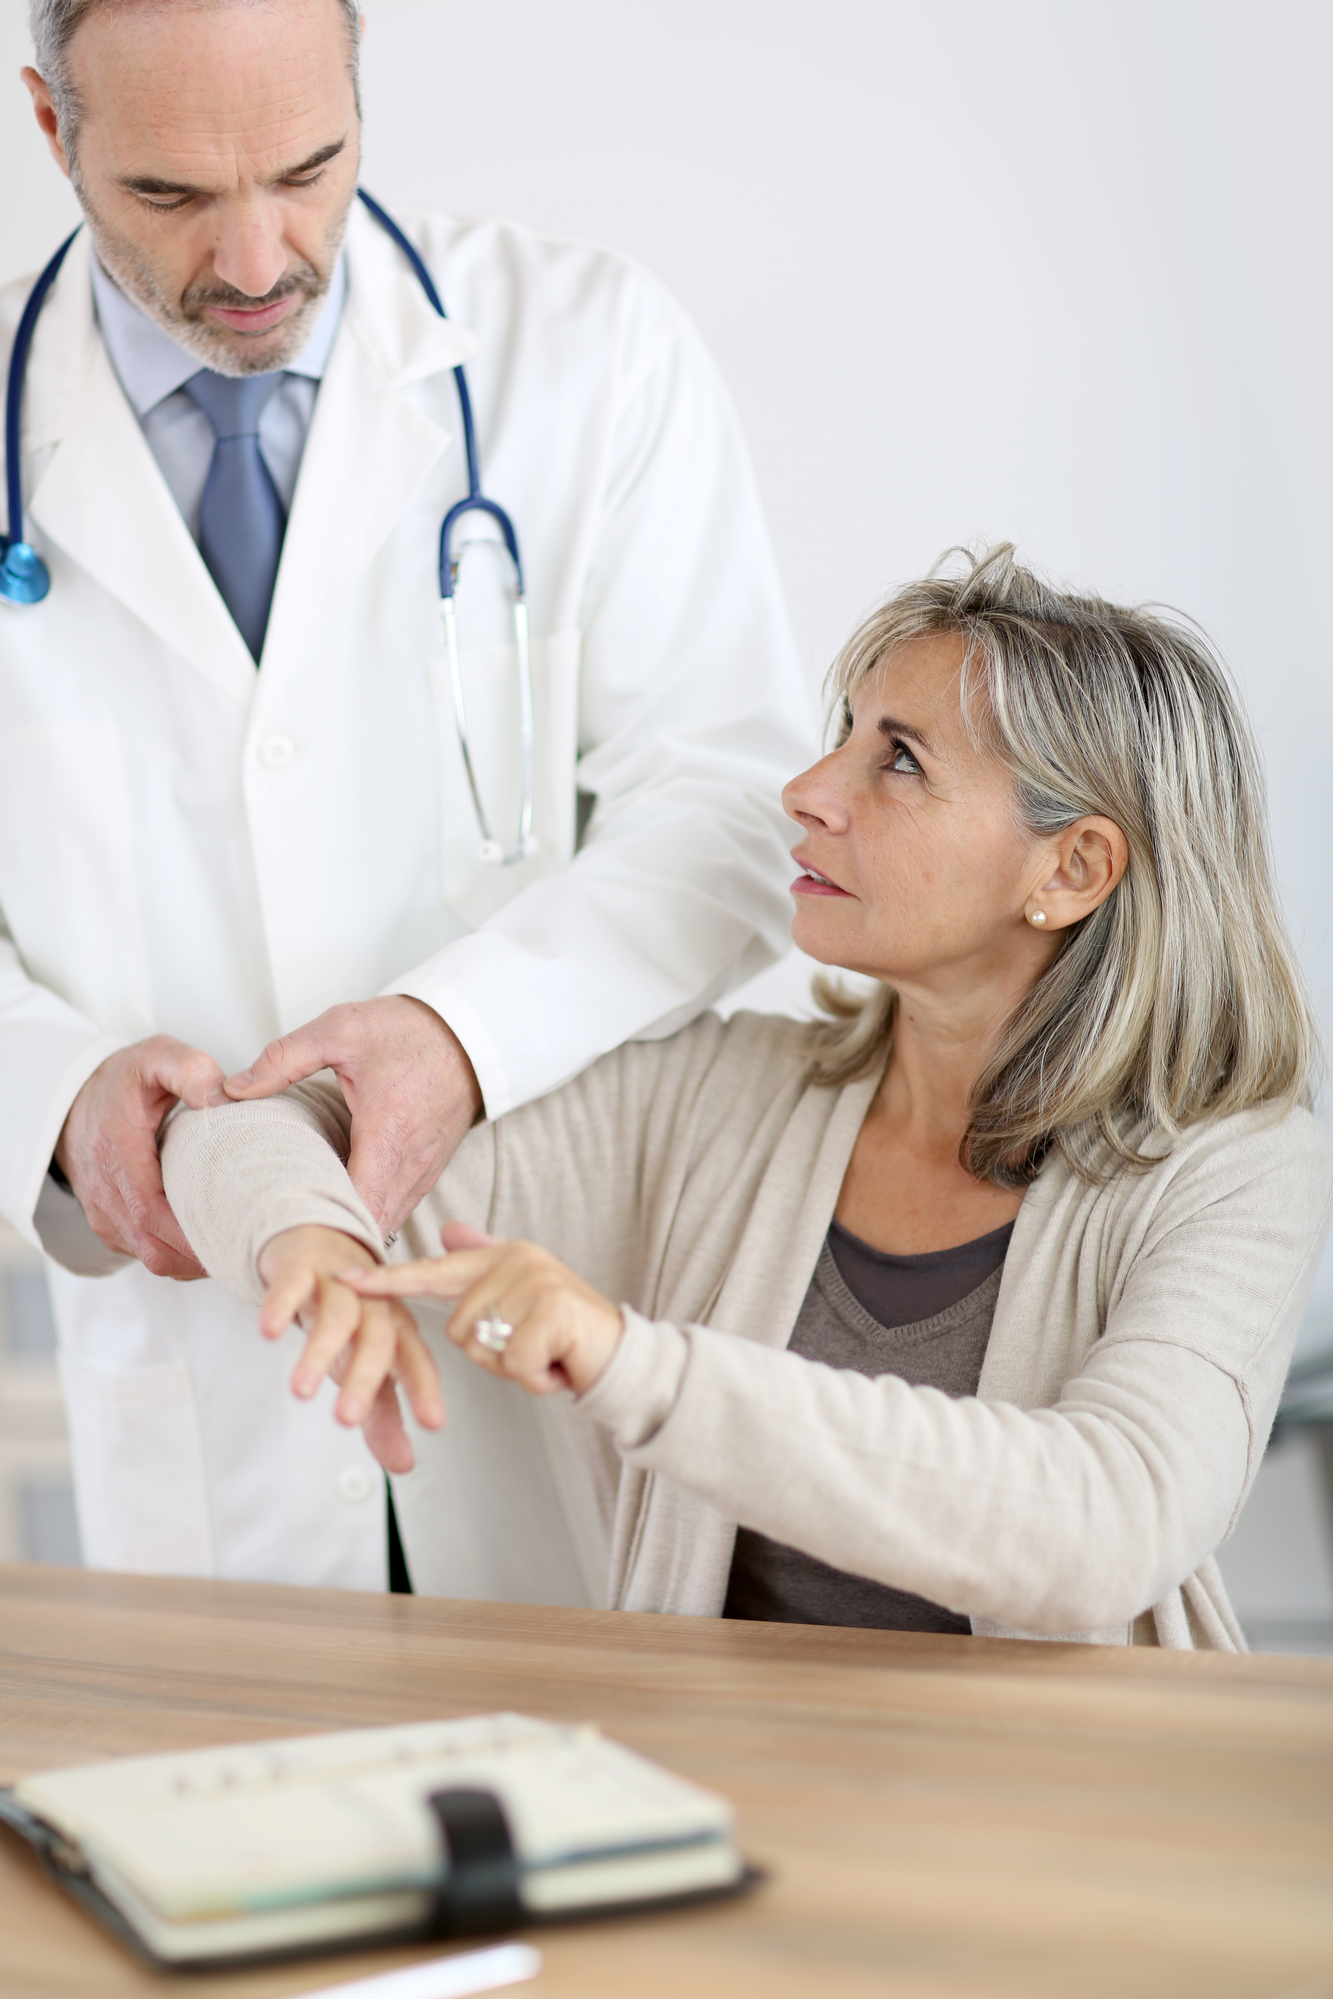 Patient consulting doctor for elbow pain and possible arthritis